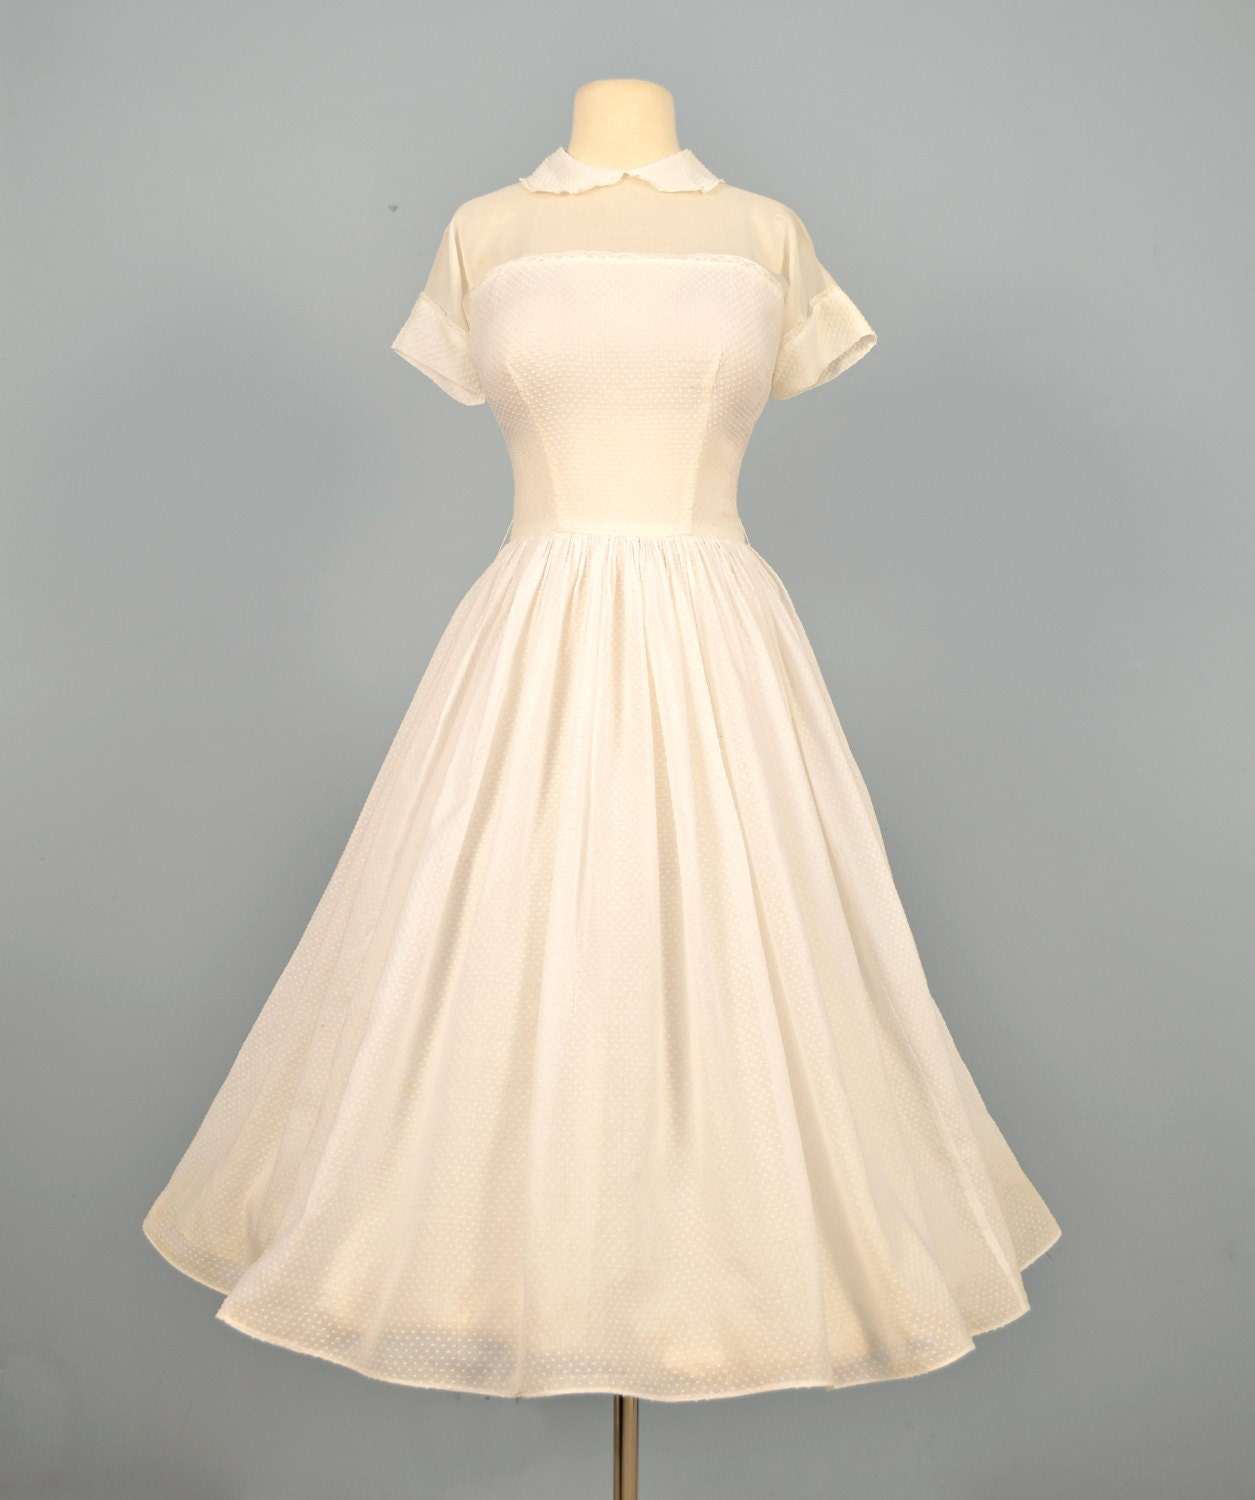 Vintage 1950s Wedding Dress Darling White Cotton by deomas